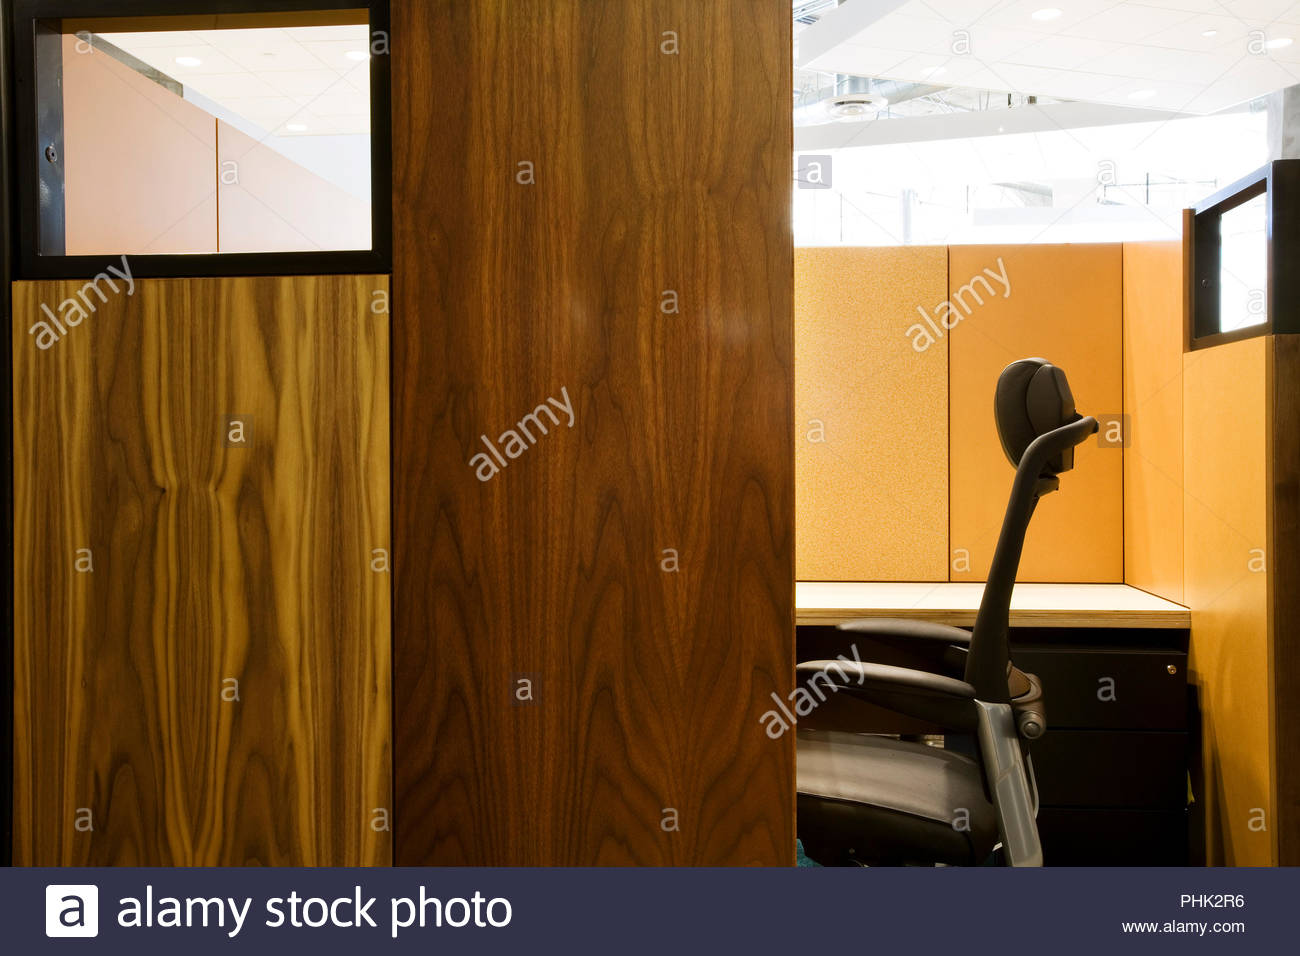 Wooden office cubicle - Stock Image